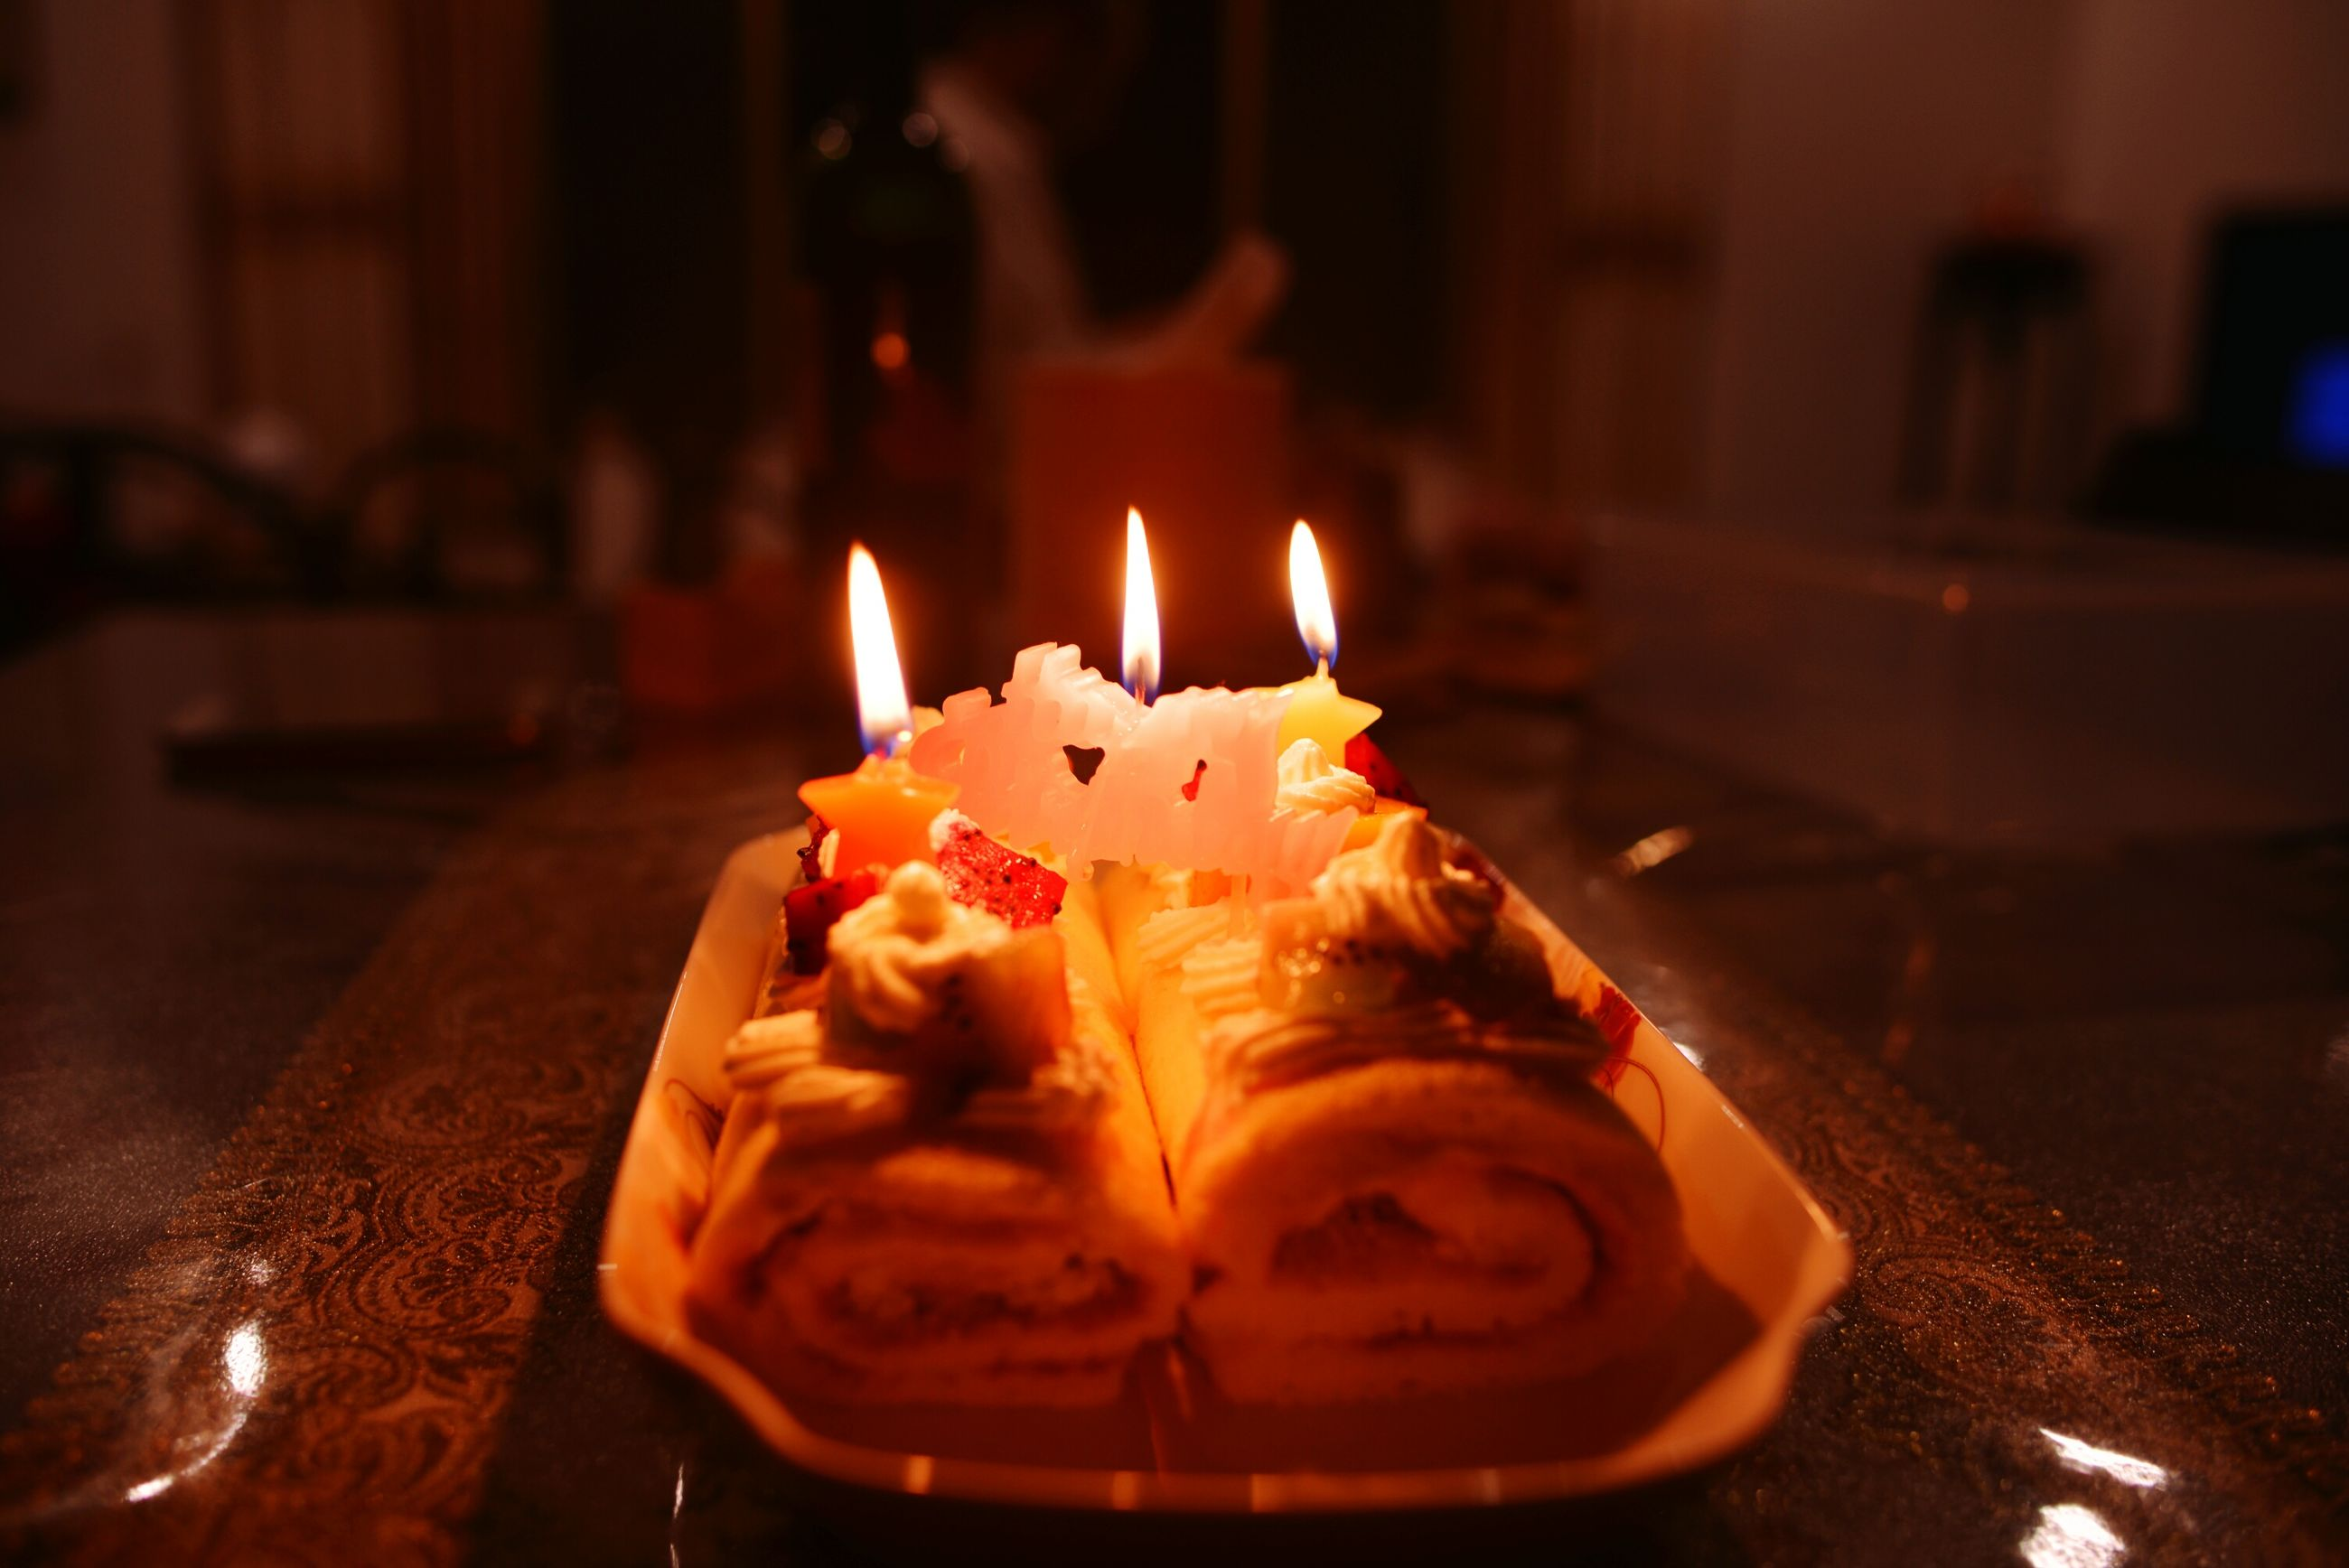 burning, flame, fire - natural phenomenon, night, close-up, heat - temperature, focus on foreground, illuminated, indoors, candle, glowing, fire, sweet food, selective focus, table, celebration, no people, art and craft, still life, creativity